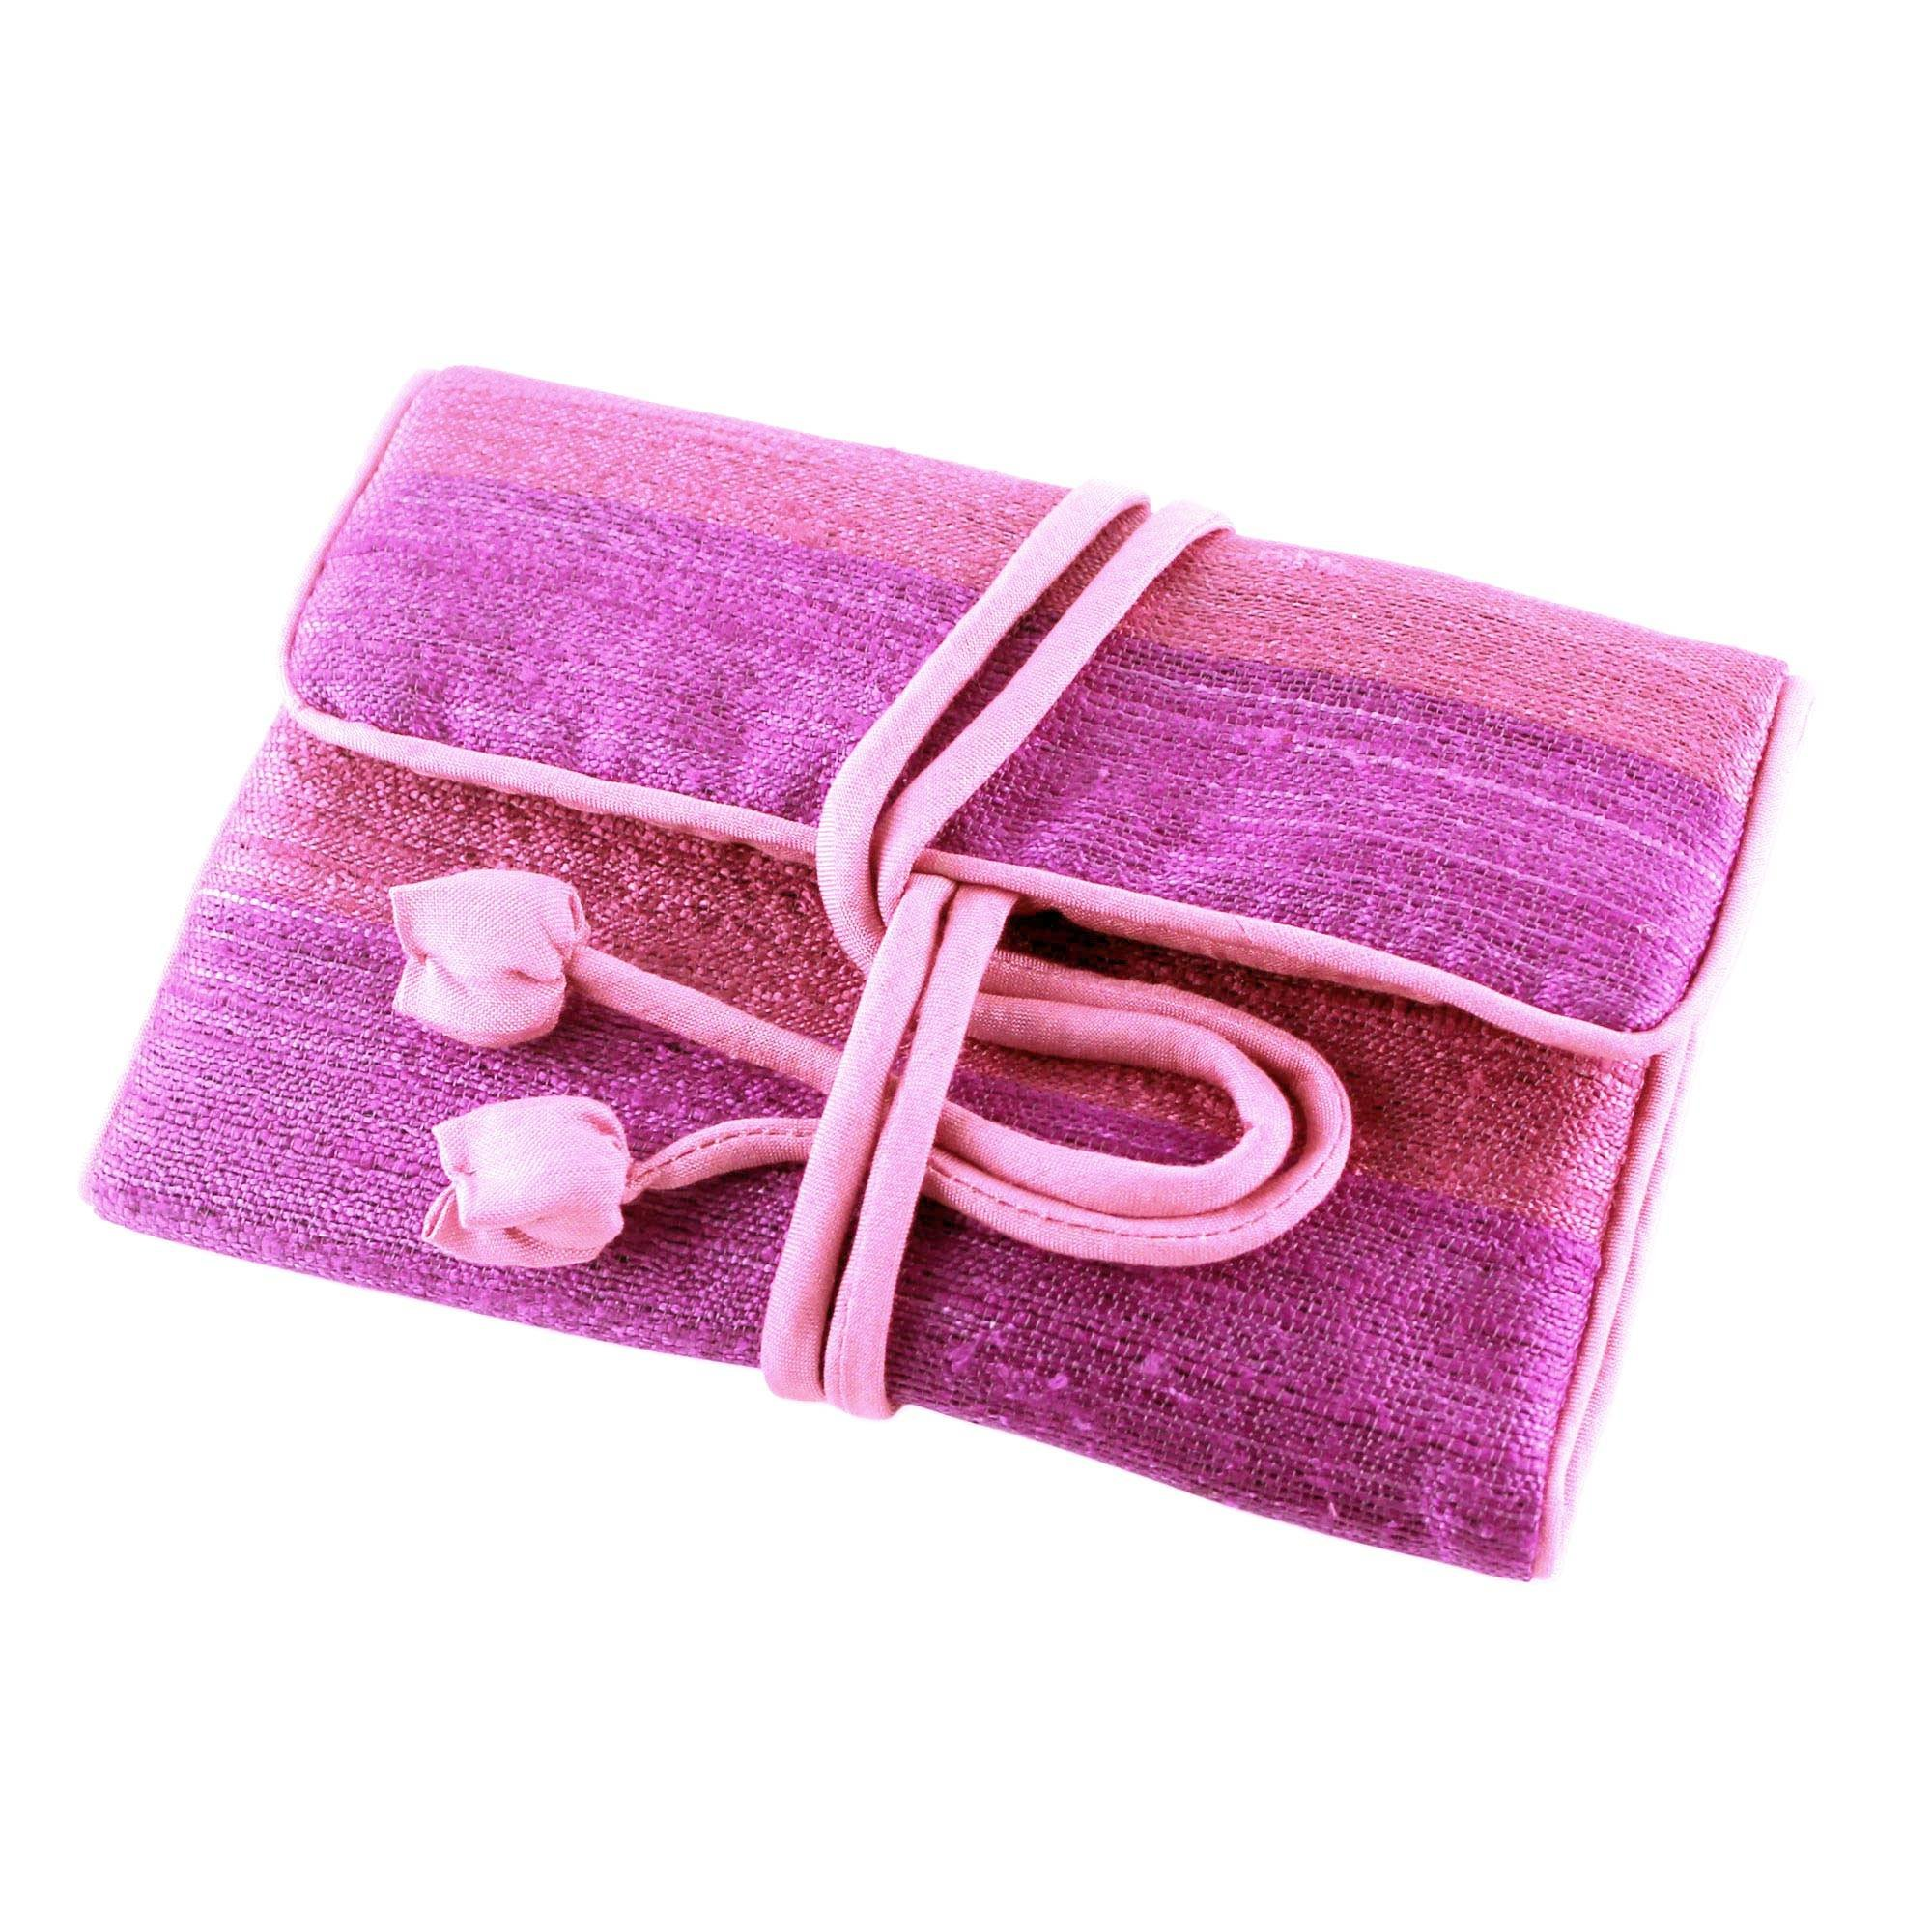 NOVICA Silk Jewelry Roll, Pink and Purple, Happy Travels In Purple'